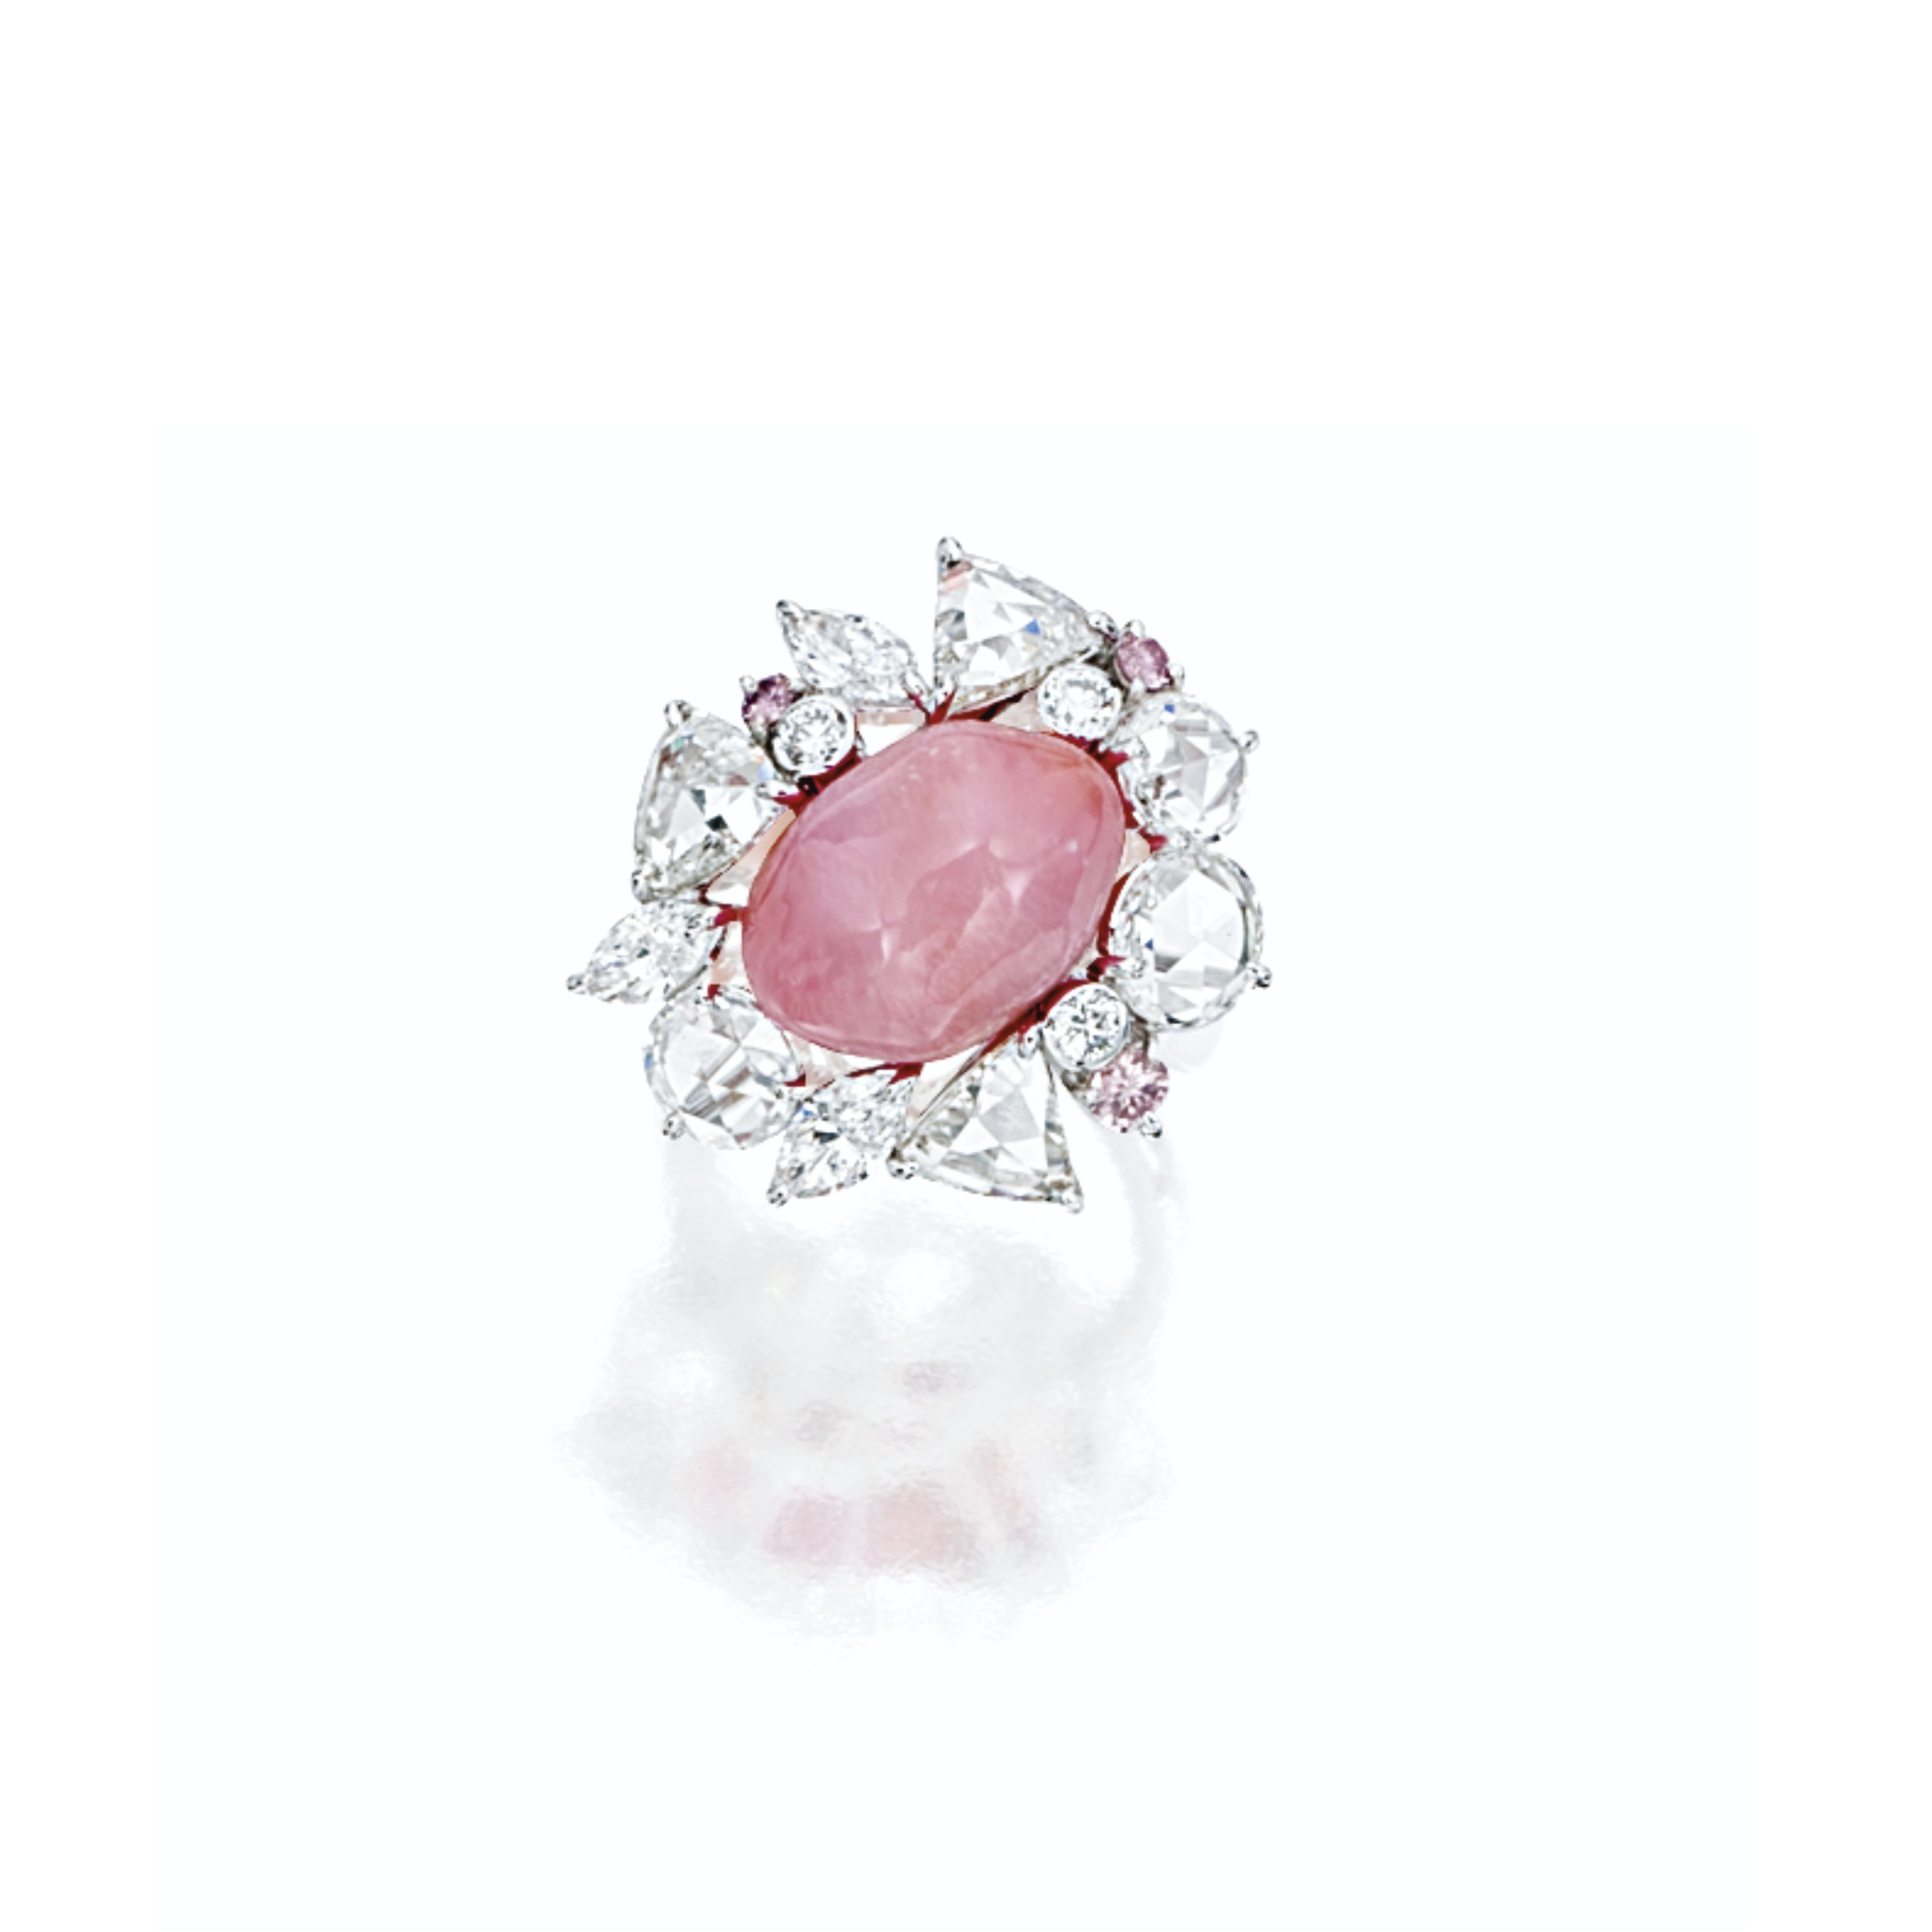 Conch Pearl Diamond And Pink Diamond Ring Centring On A